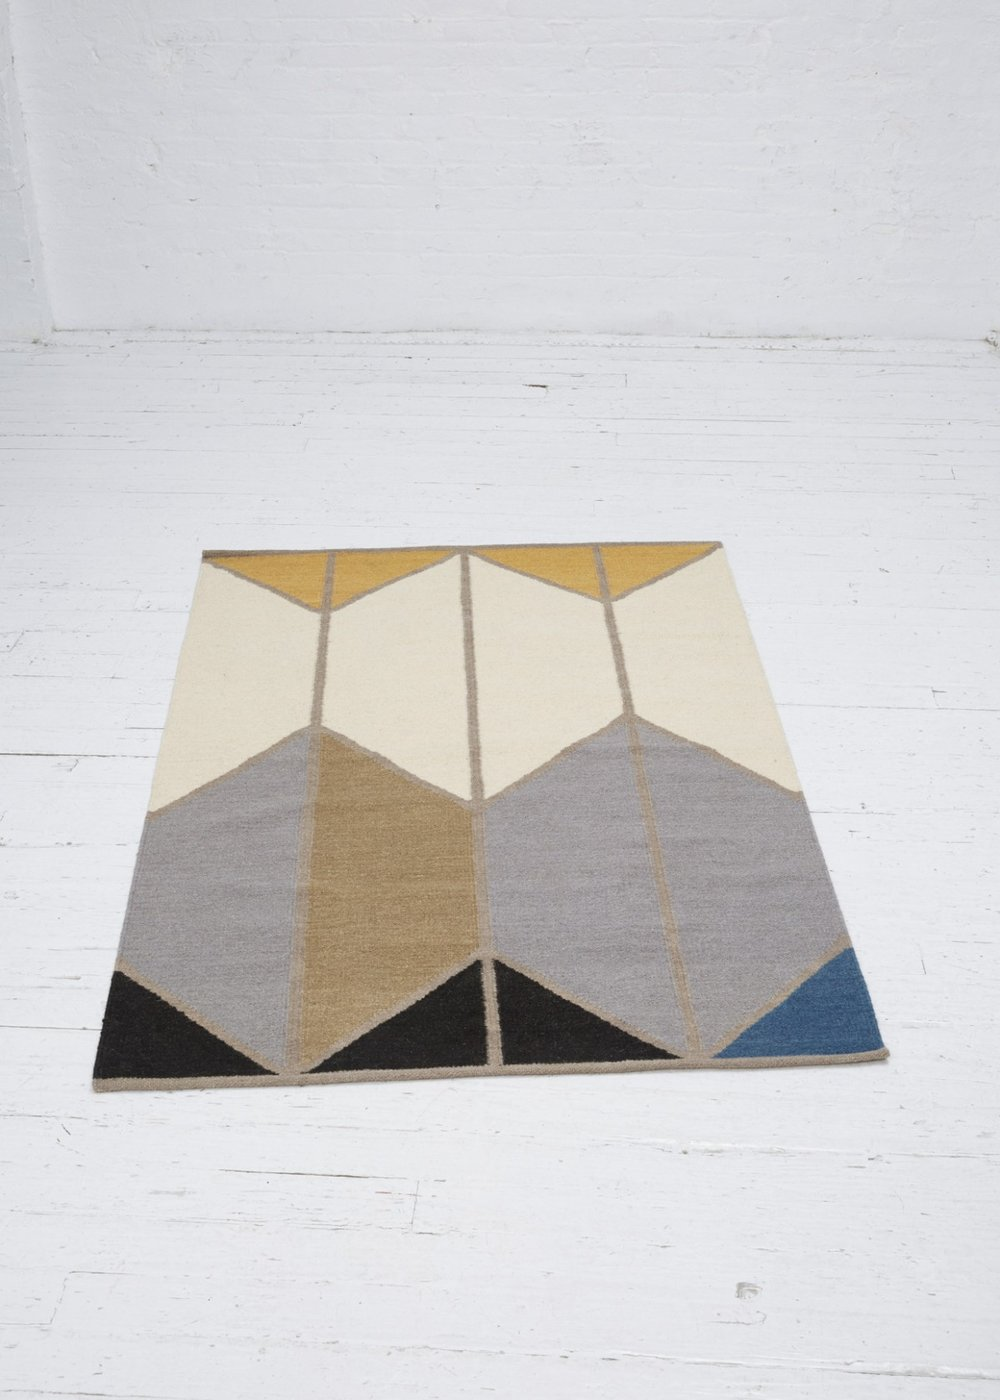 HAWKINS NEW YORK Alyson Fox Shapes Rug 4'X6' $300